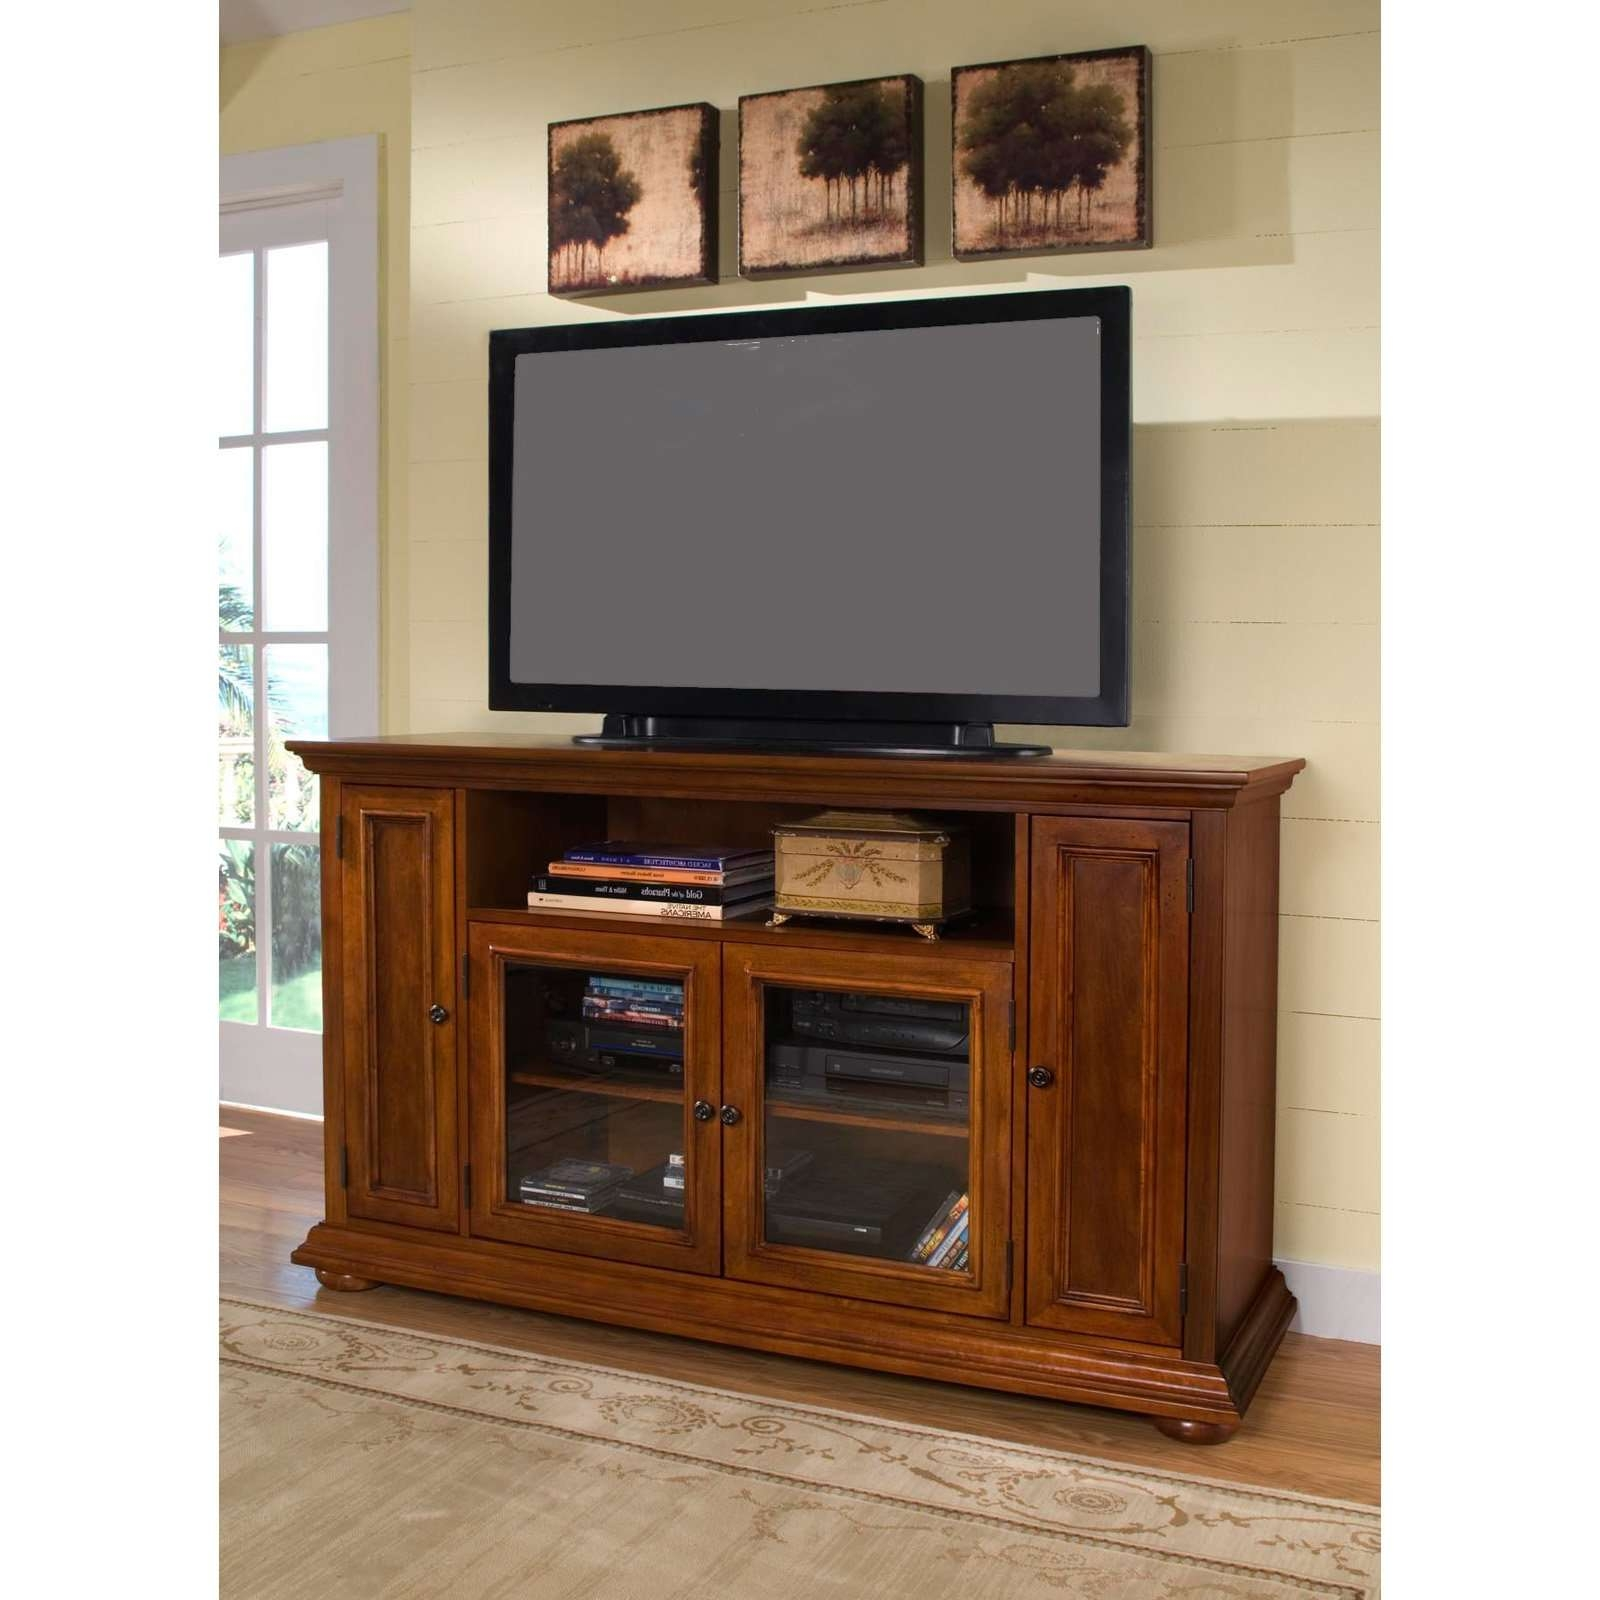 Pl Modern Wooden Television Stands Glass Doors And Drawers Dark With Wooden Tv Cabinets (View 16 of 20)